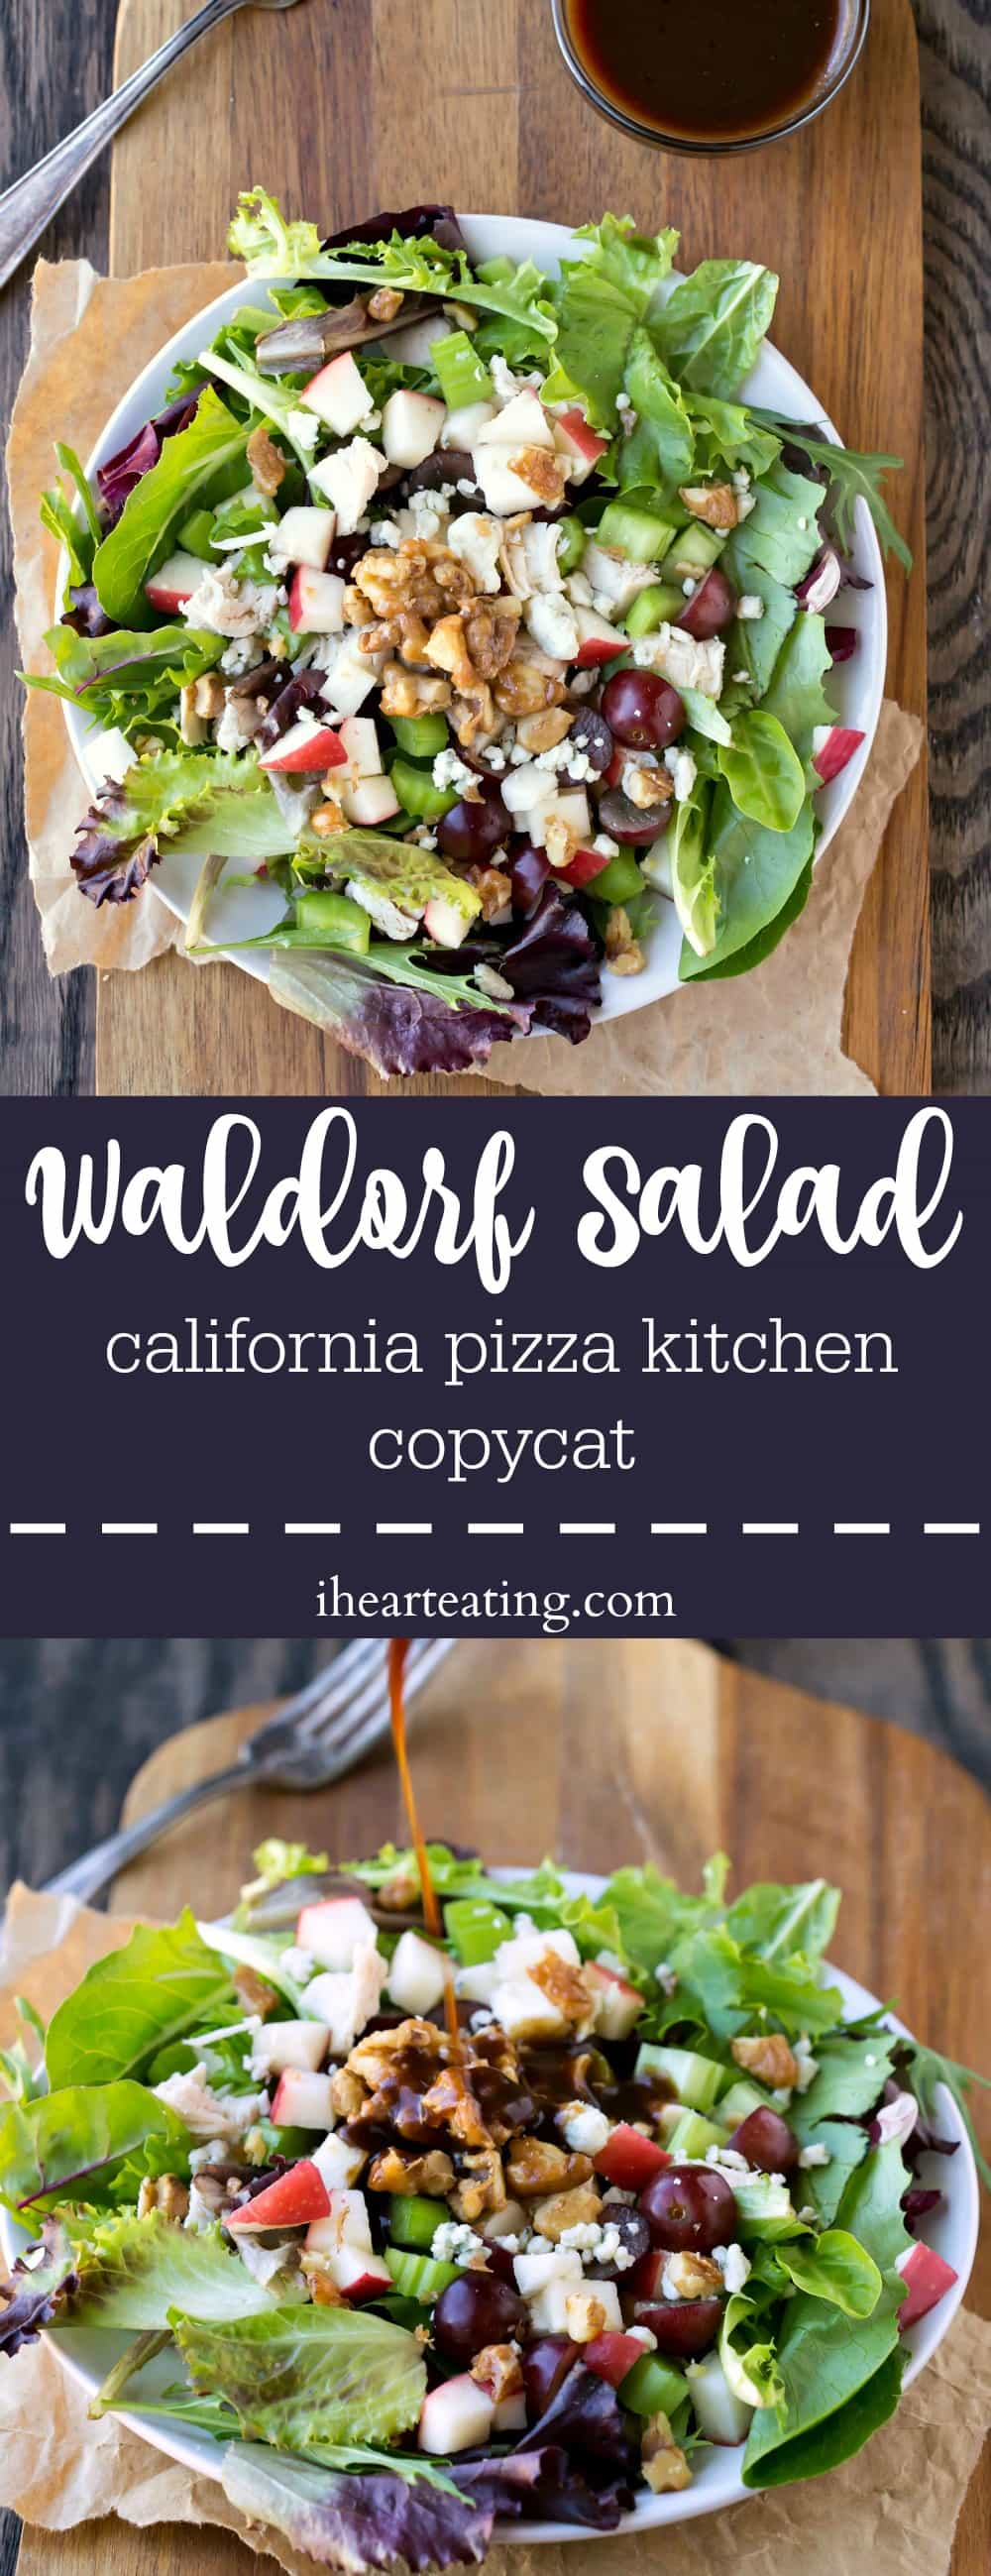 Waldorf Salad California Pizza Kitchen Copycat Recipe